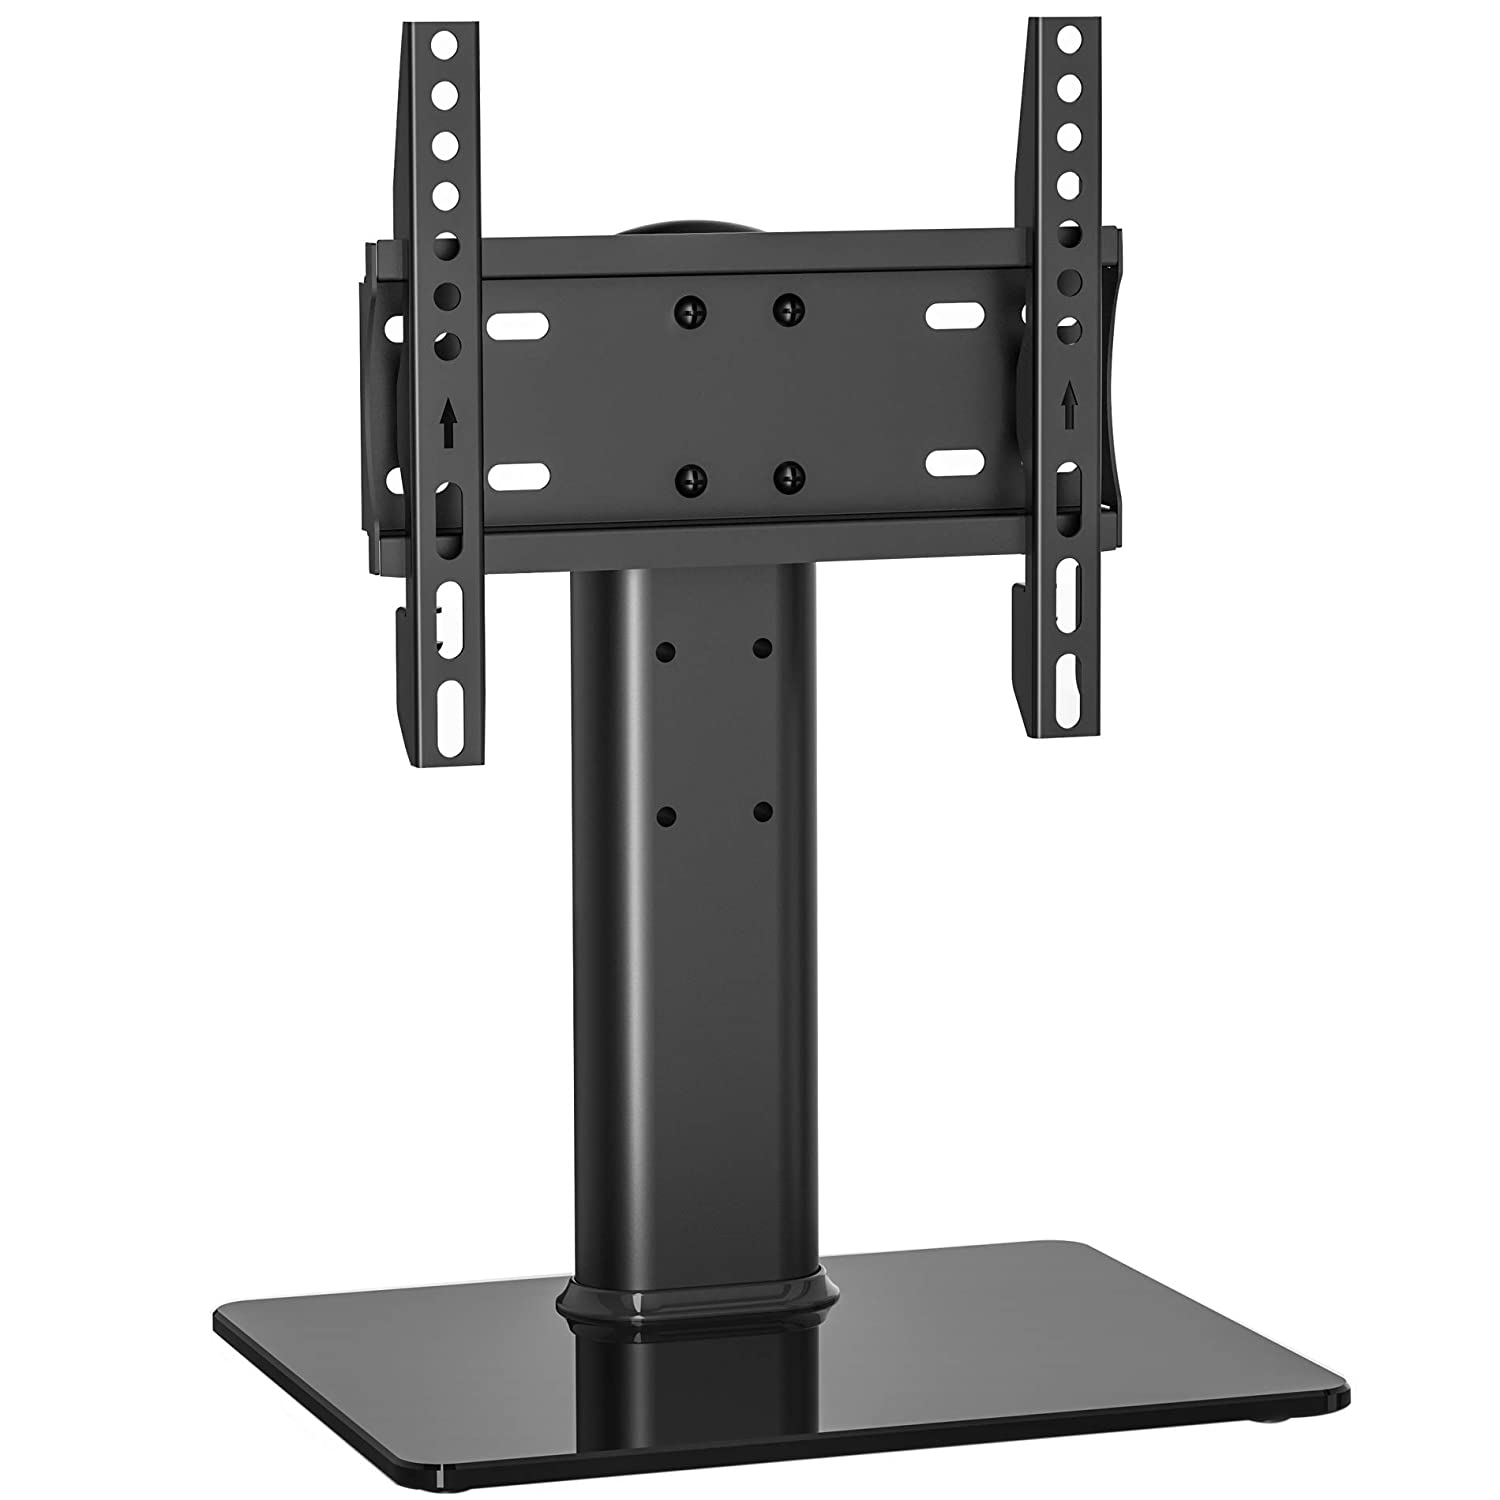 Fitueyes Universal TV Stand/Base with Swivel Mount for up to 32inch Flat Curved Screen TVS Height Adjustable TT103201GB